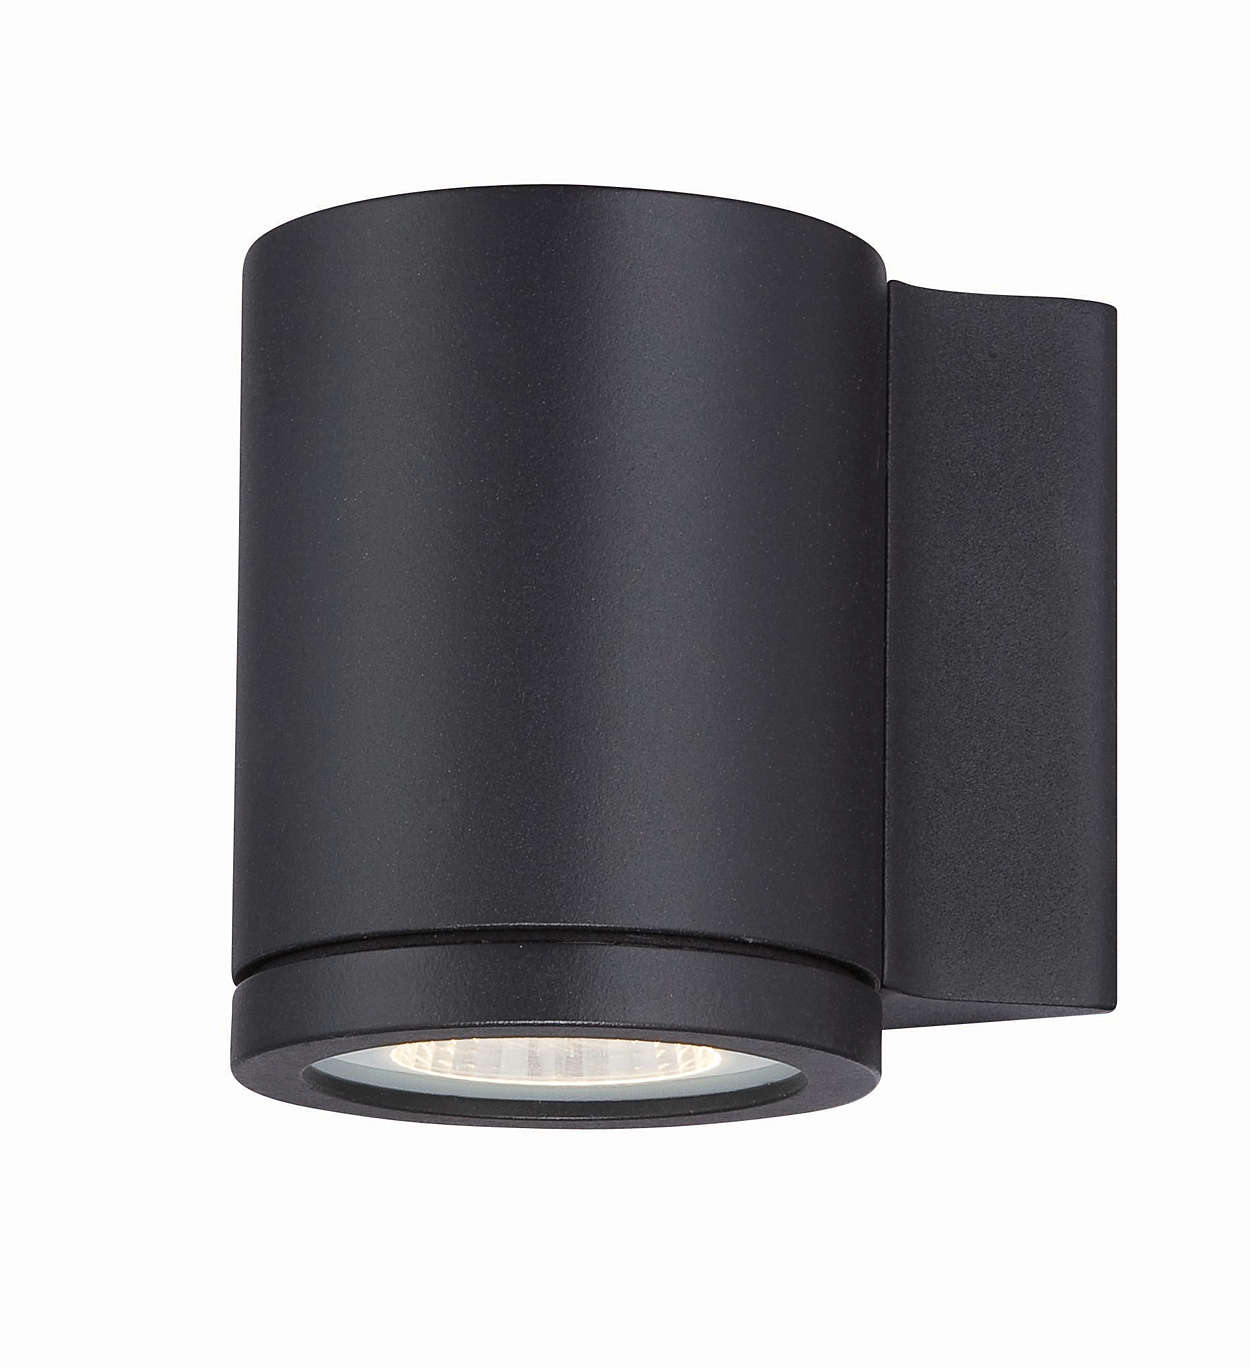 Wall light fl0007030 forecast rox led indooroutdoor wall light amipublicfo Image collections